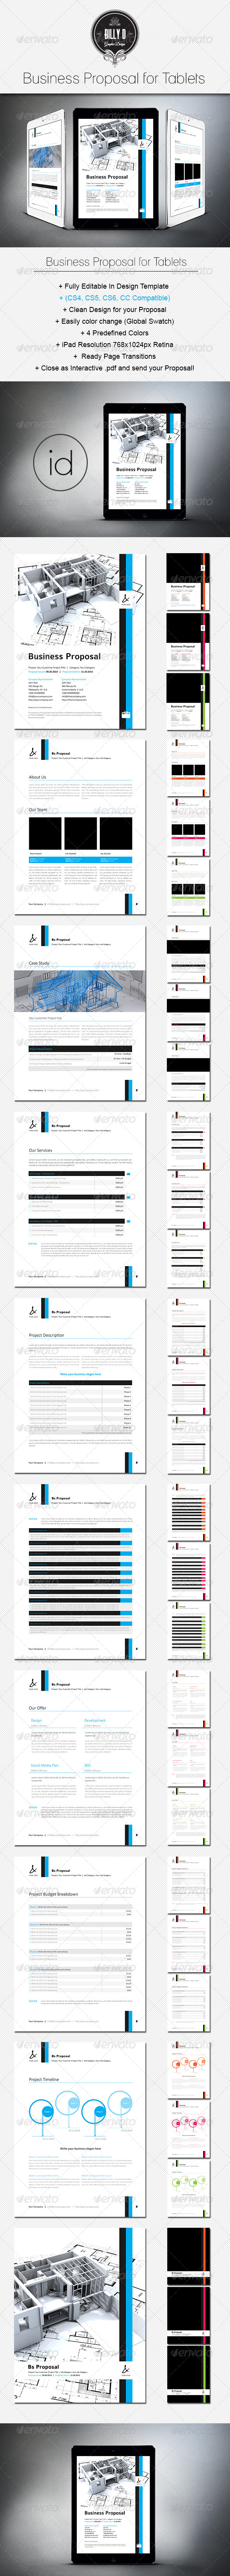 GraphicRiver Business Proposal Template for Tablets 8766530